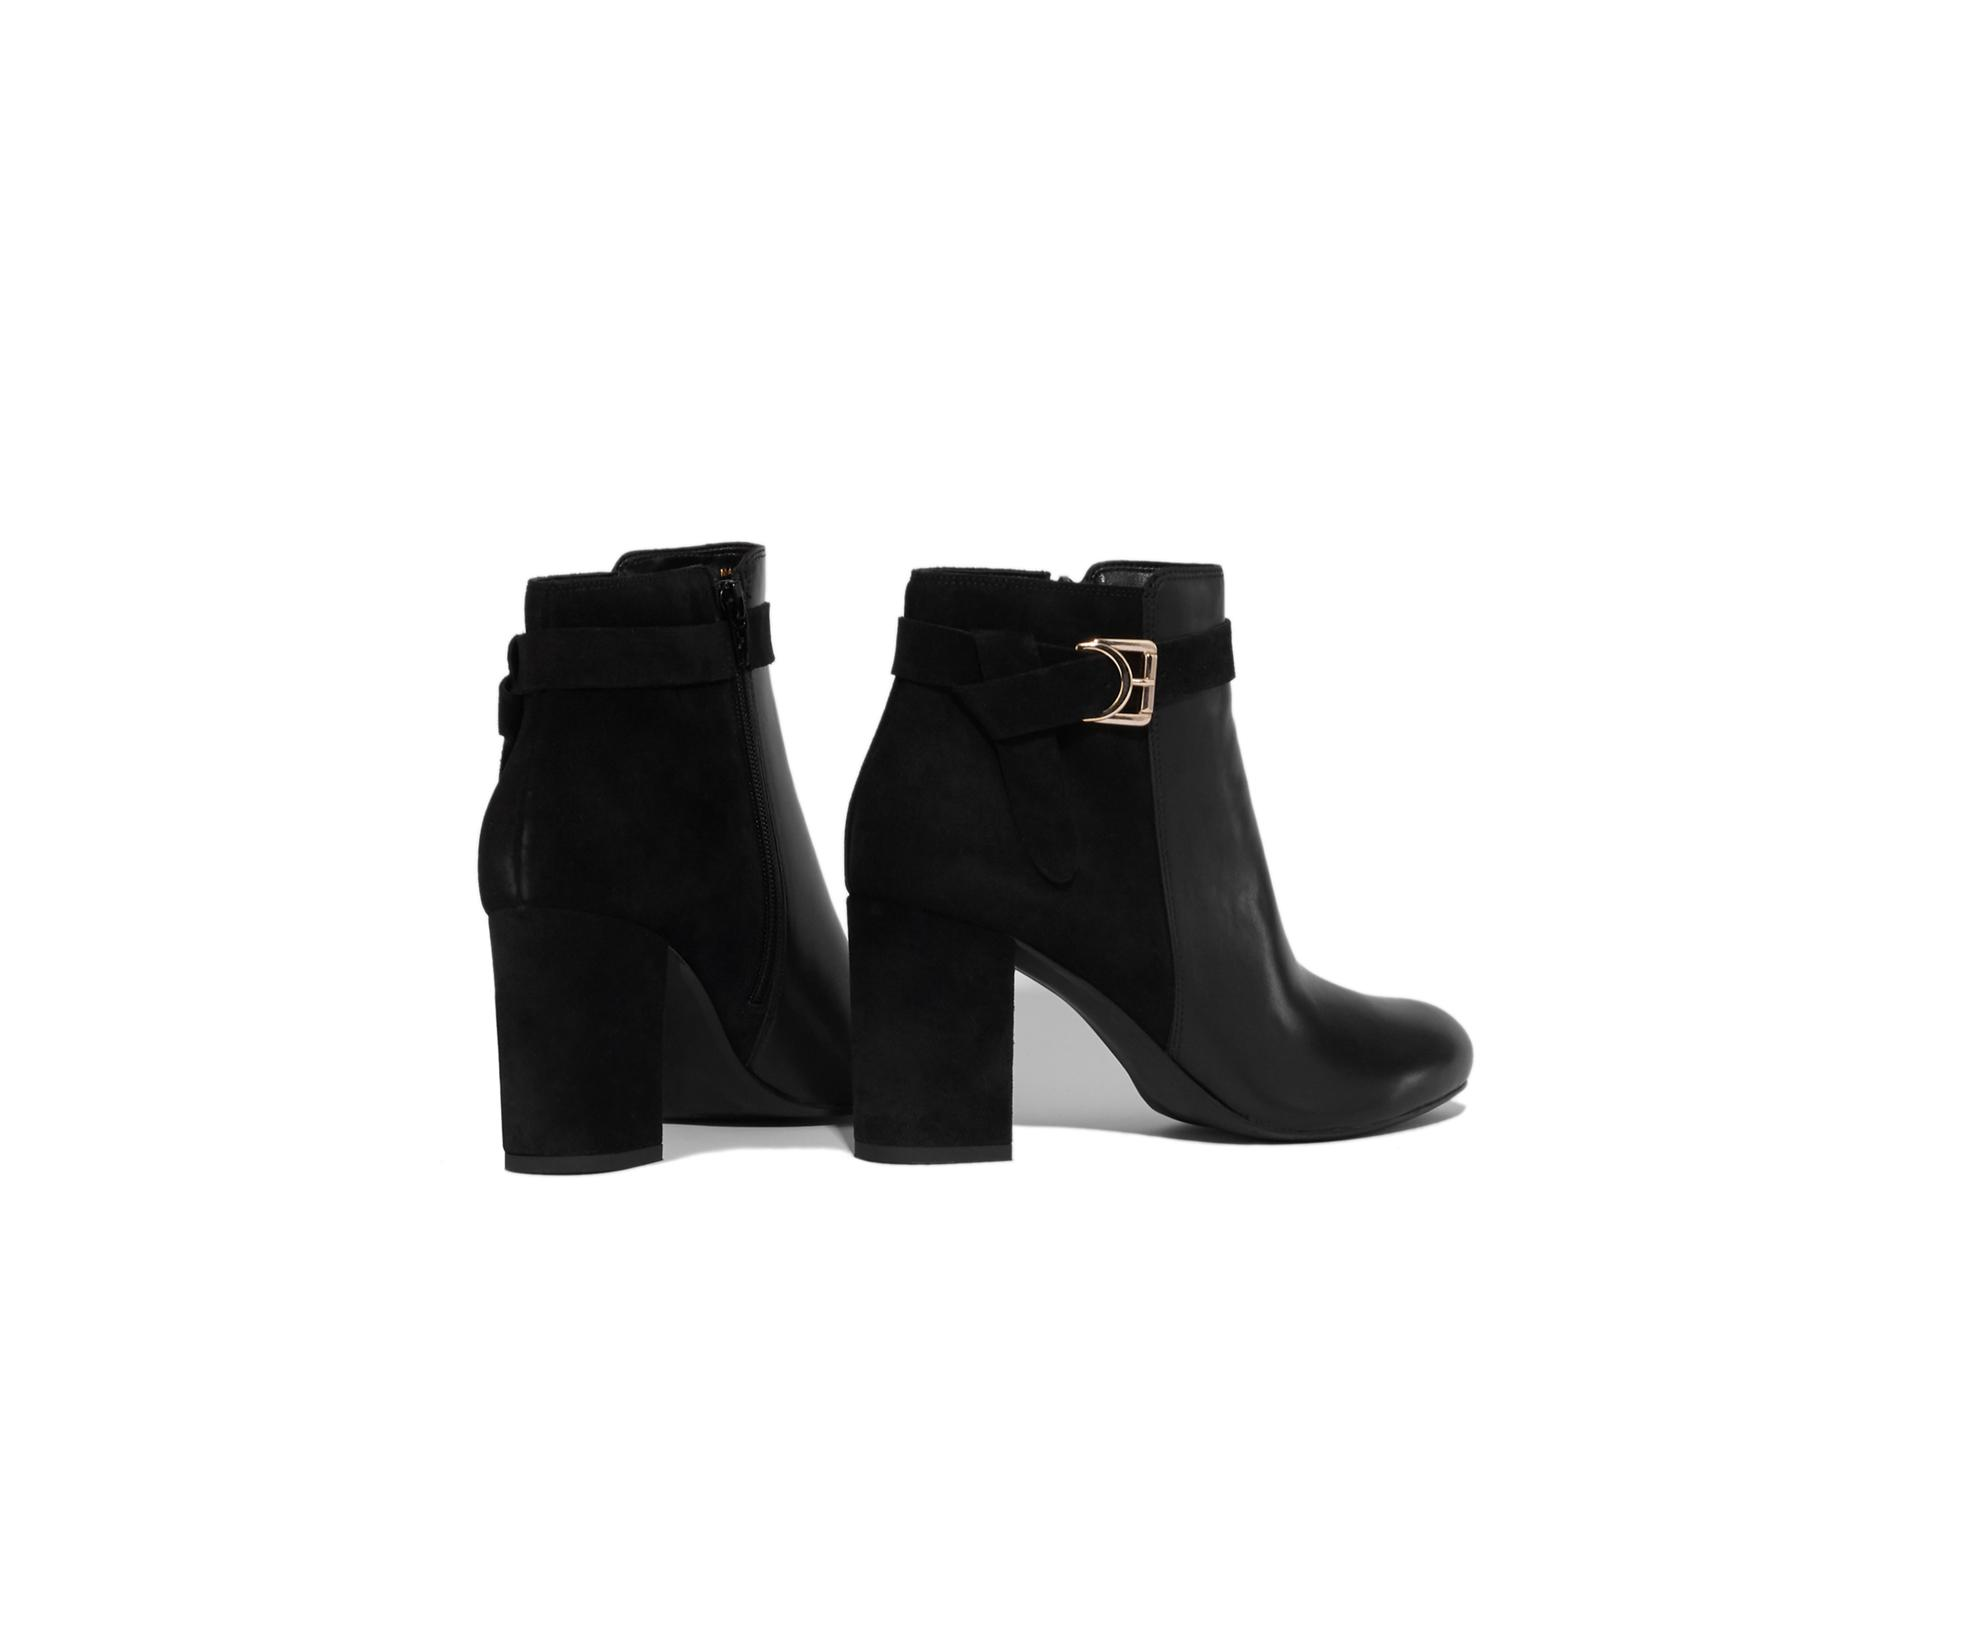 6a0cab97077d Oasis - Black Block Leather Ankle Boots - Lyst. View fullscreen